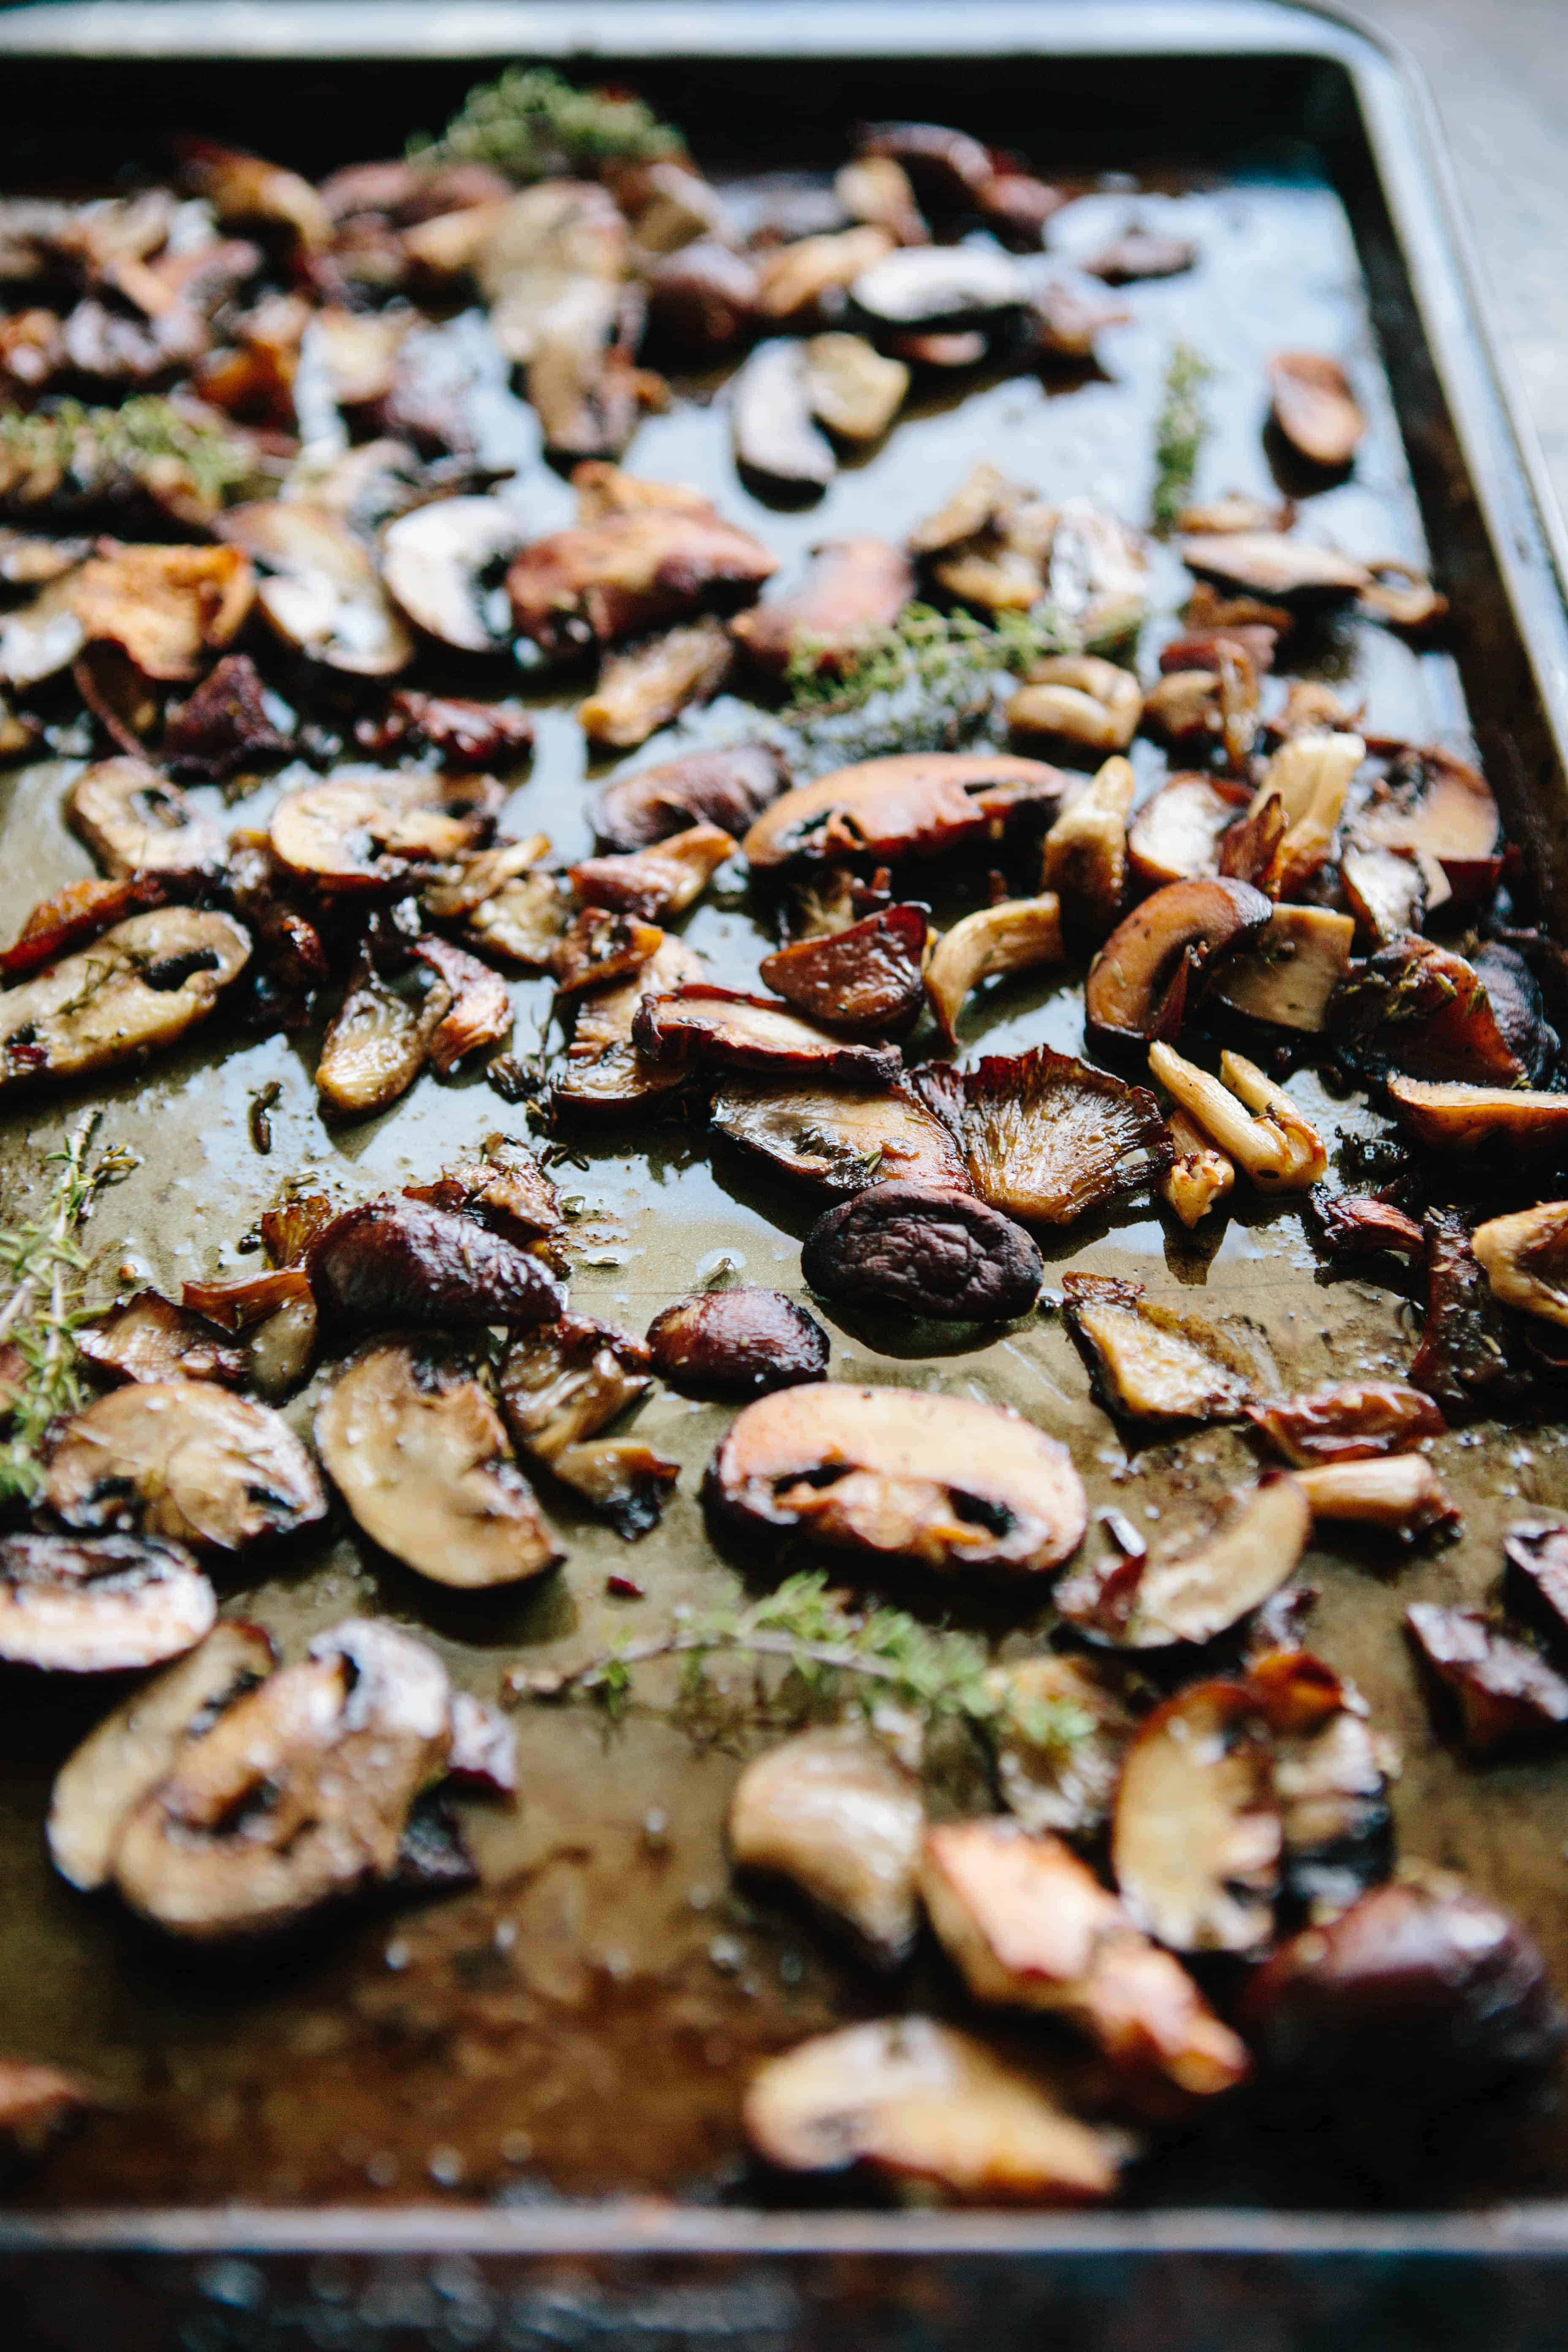 A baking sheet filled with sliced mushrooms and fresh herbs that have been roasted.